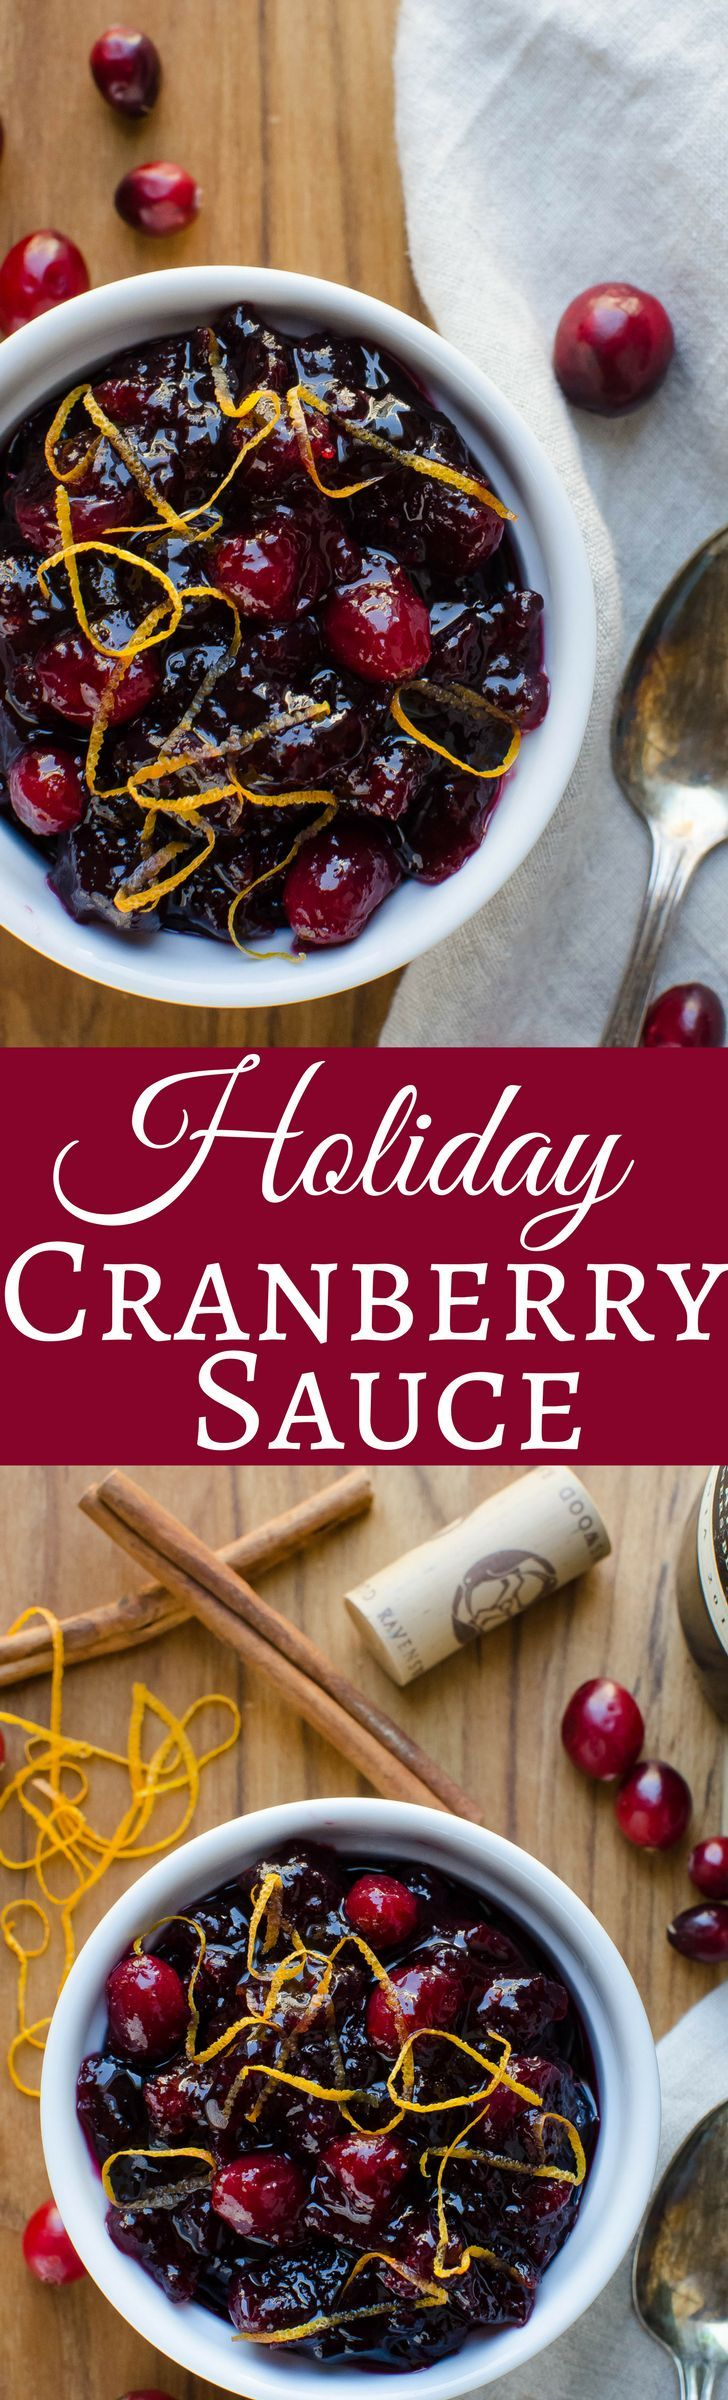 This easy to make cranberry sauce recipe is loaded with spices, citrus and a few glugs of Red Zinfandel! The BEST cranberry sauce EVER!